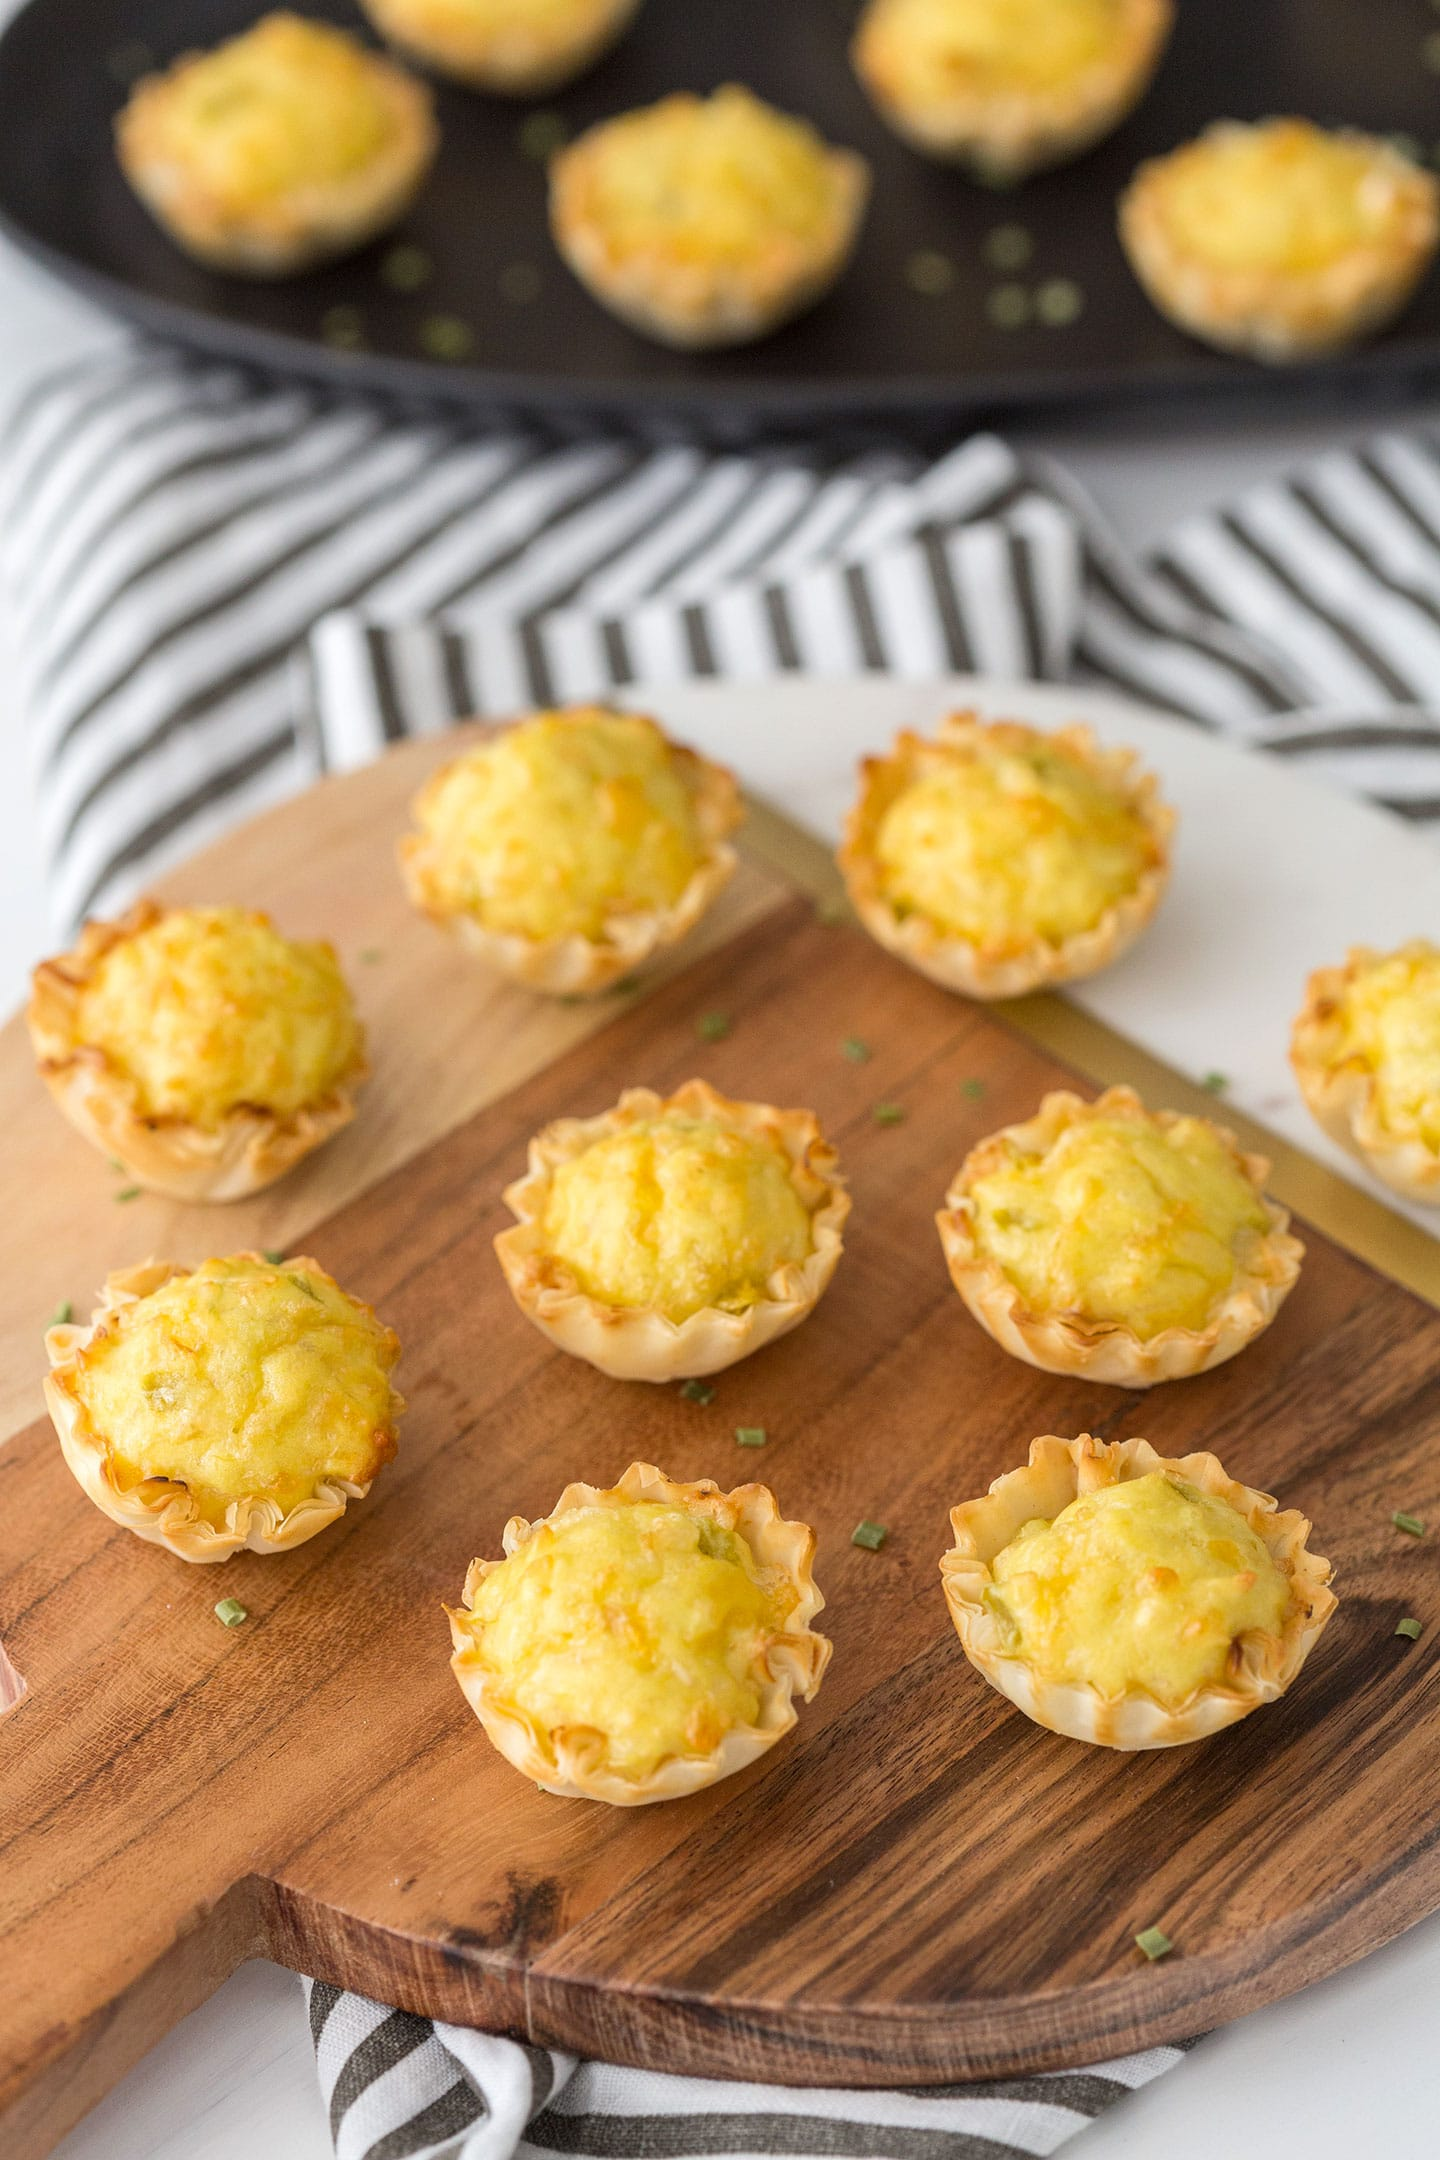 Green Chile Cheese Bites - Easy and Delish Appetizer Idea #appetizer #recipe #food